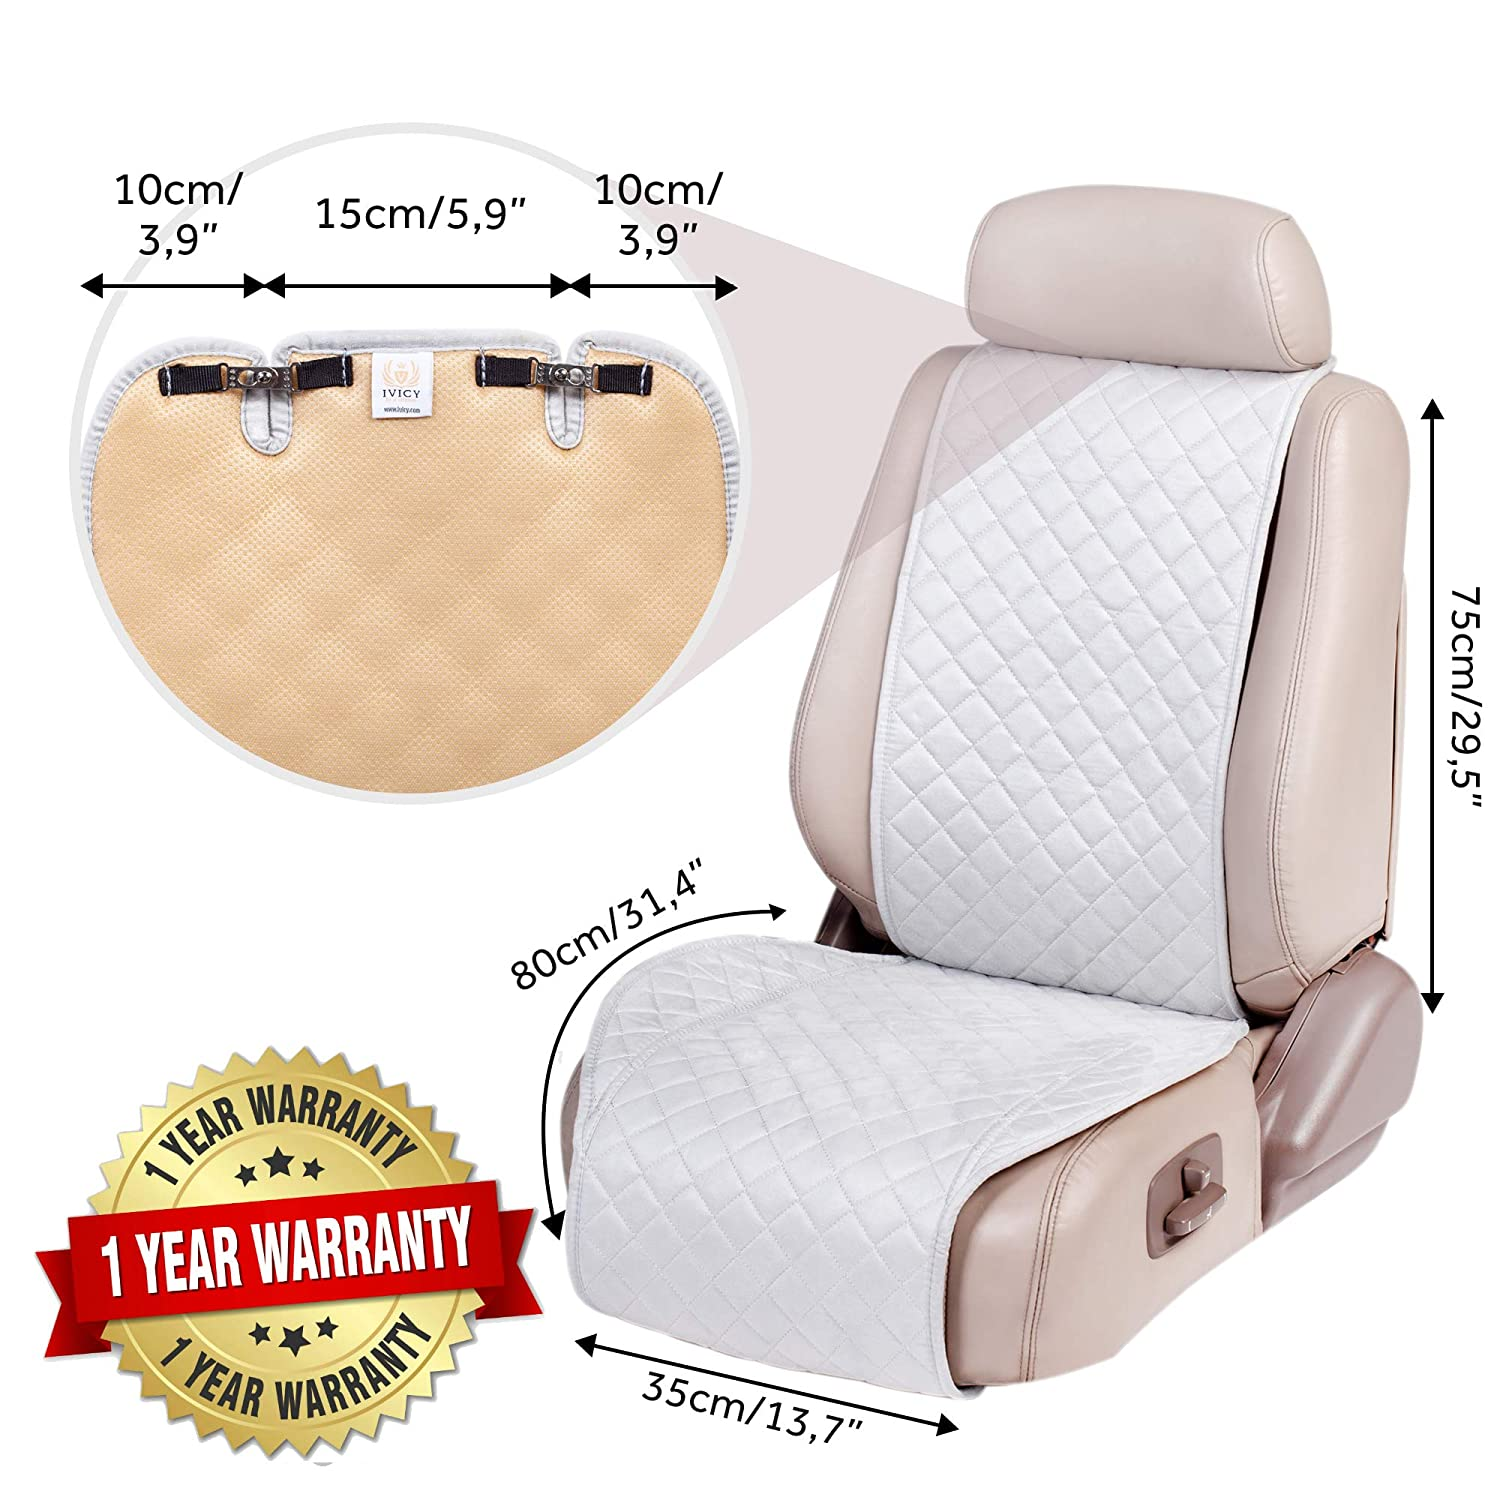 SUV Fits Most Cars IVICY Car Seat Cover Protector Cushion Girls Men 1-pc Truck Boys Car Seat Cushion Premium Covers for Women Car Seat Protector or Van